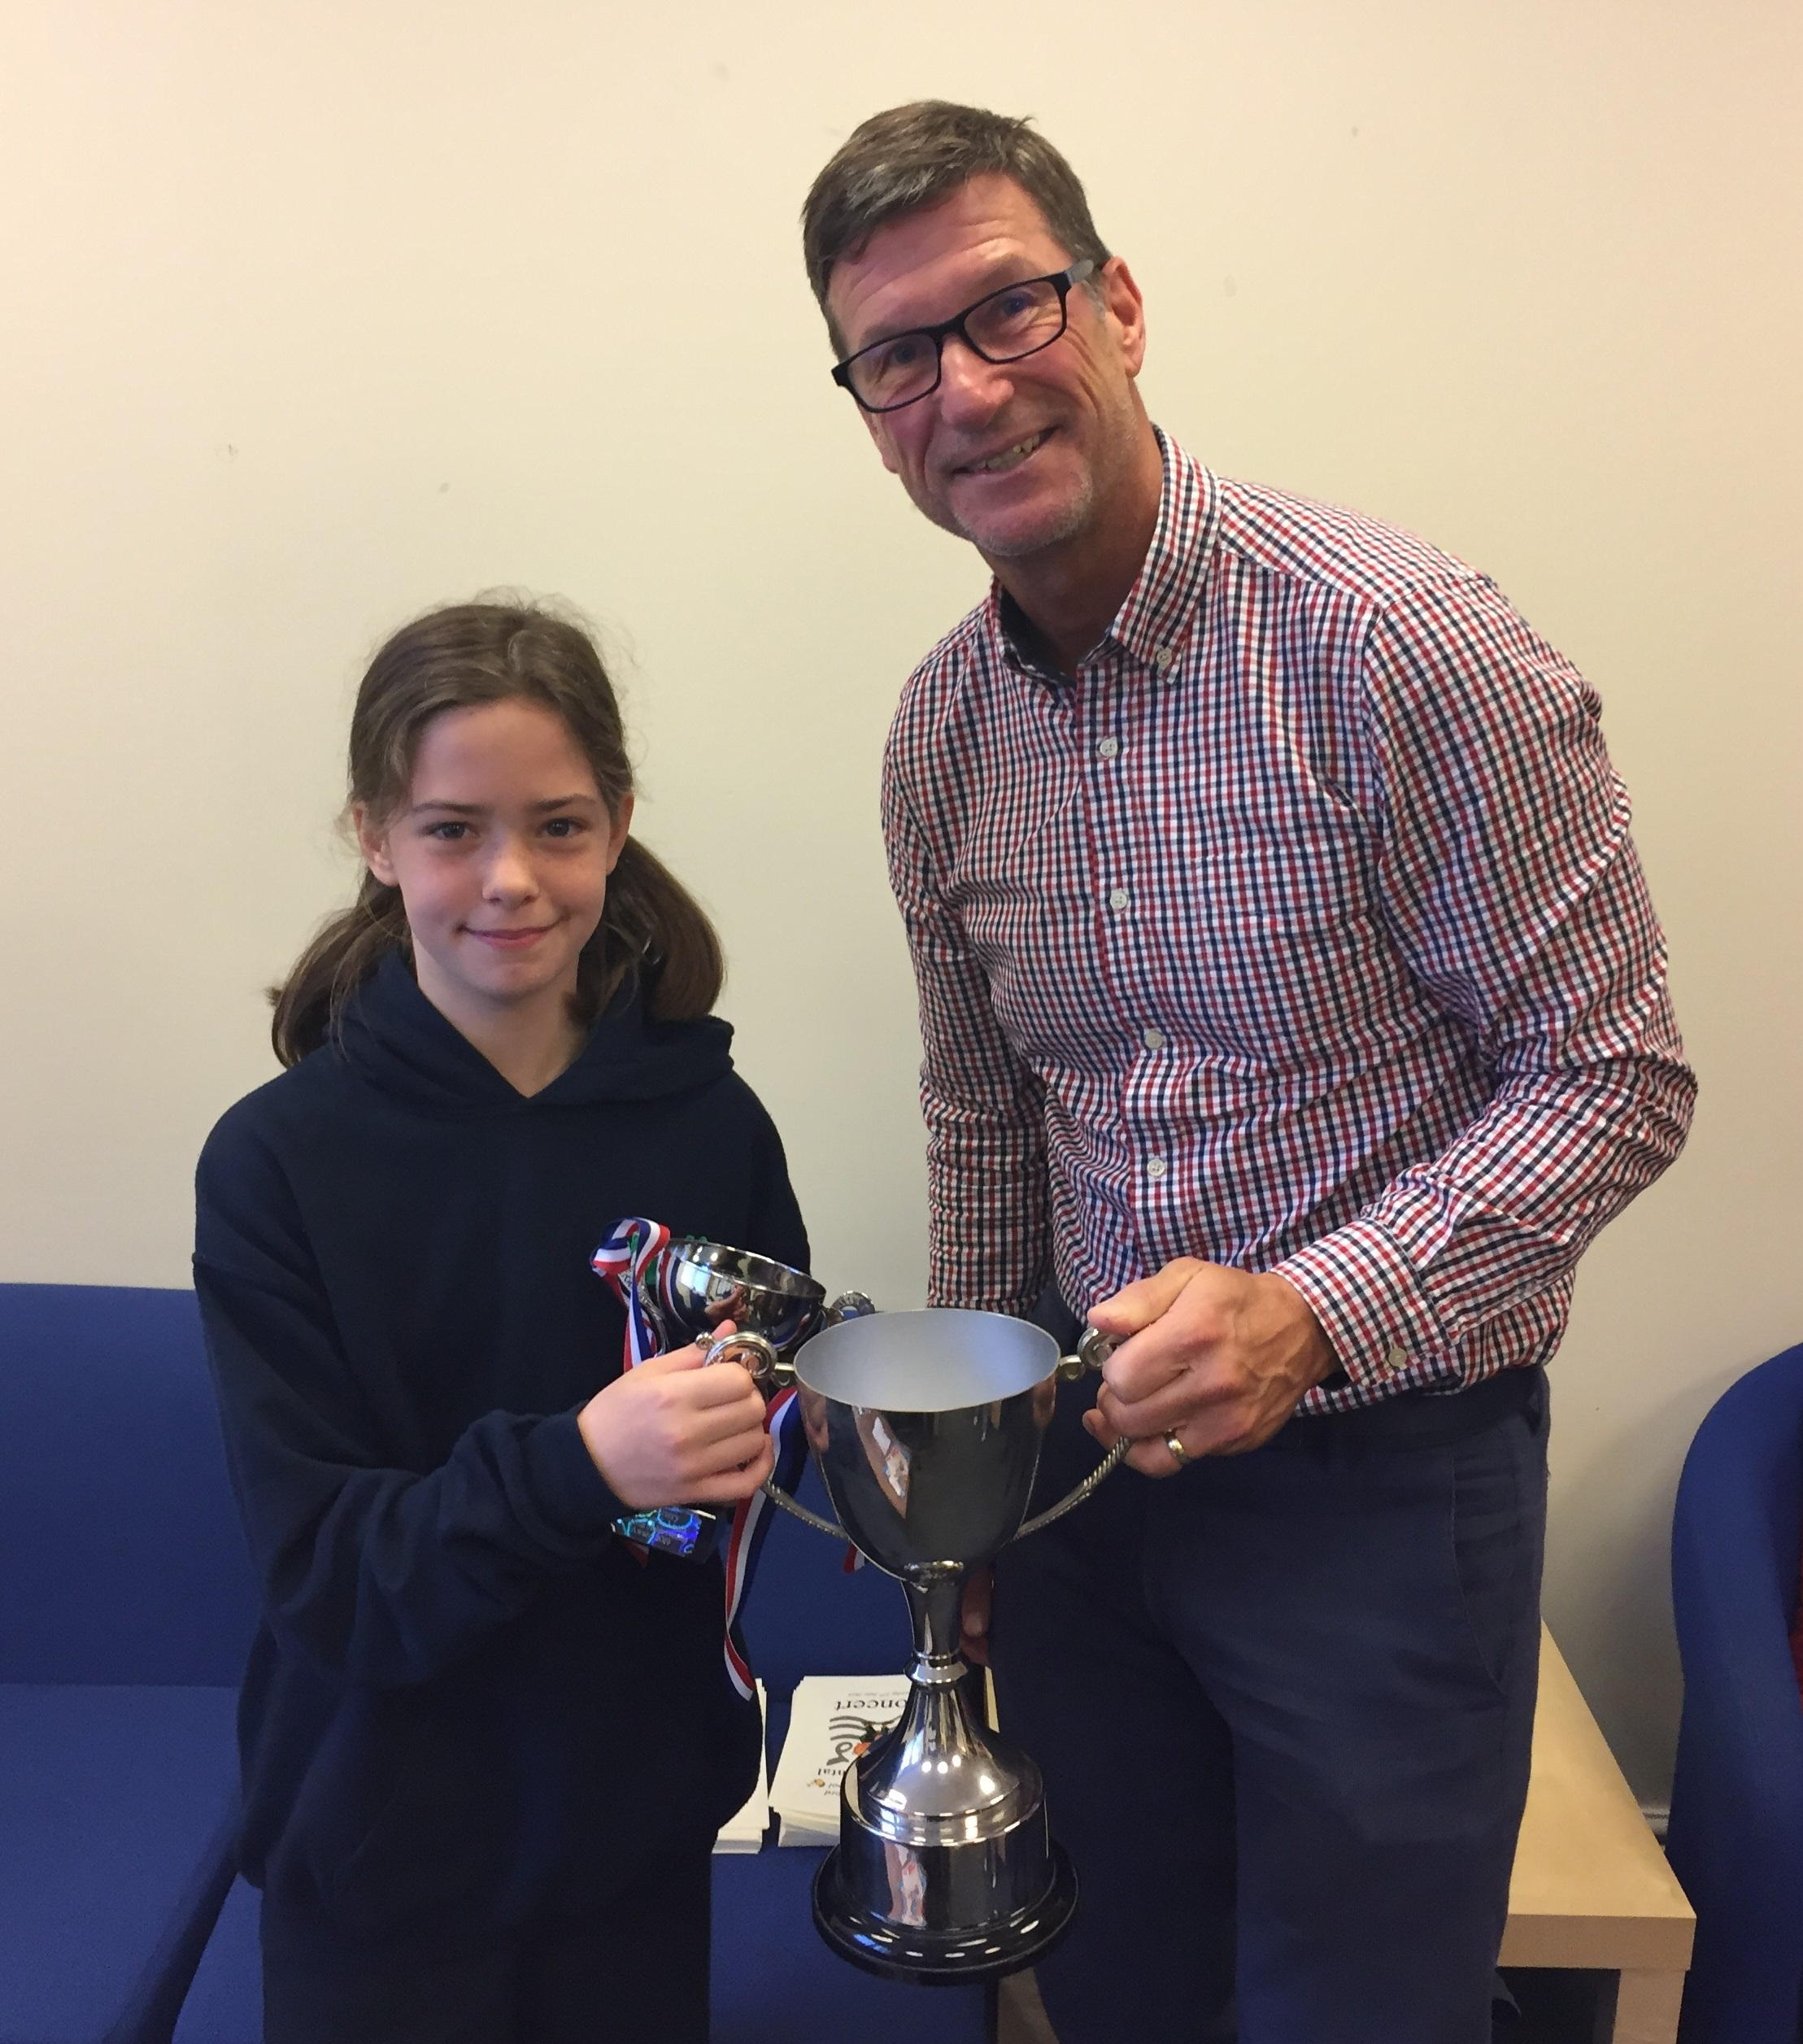 Royston & Lund Sporting Achievement Award at West Bridgford Juniors